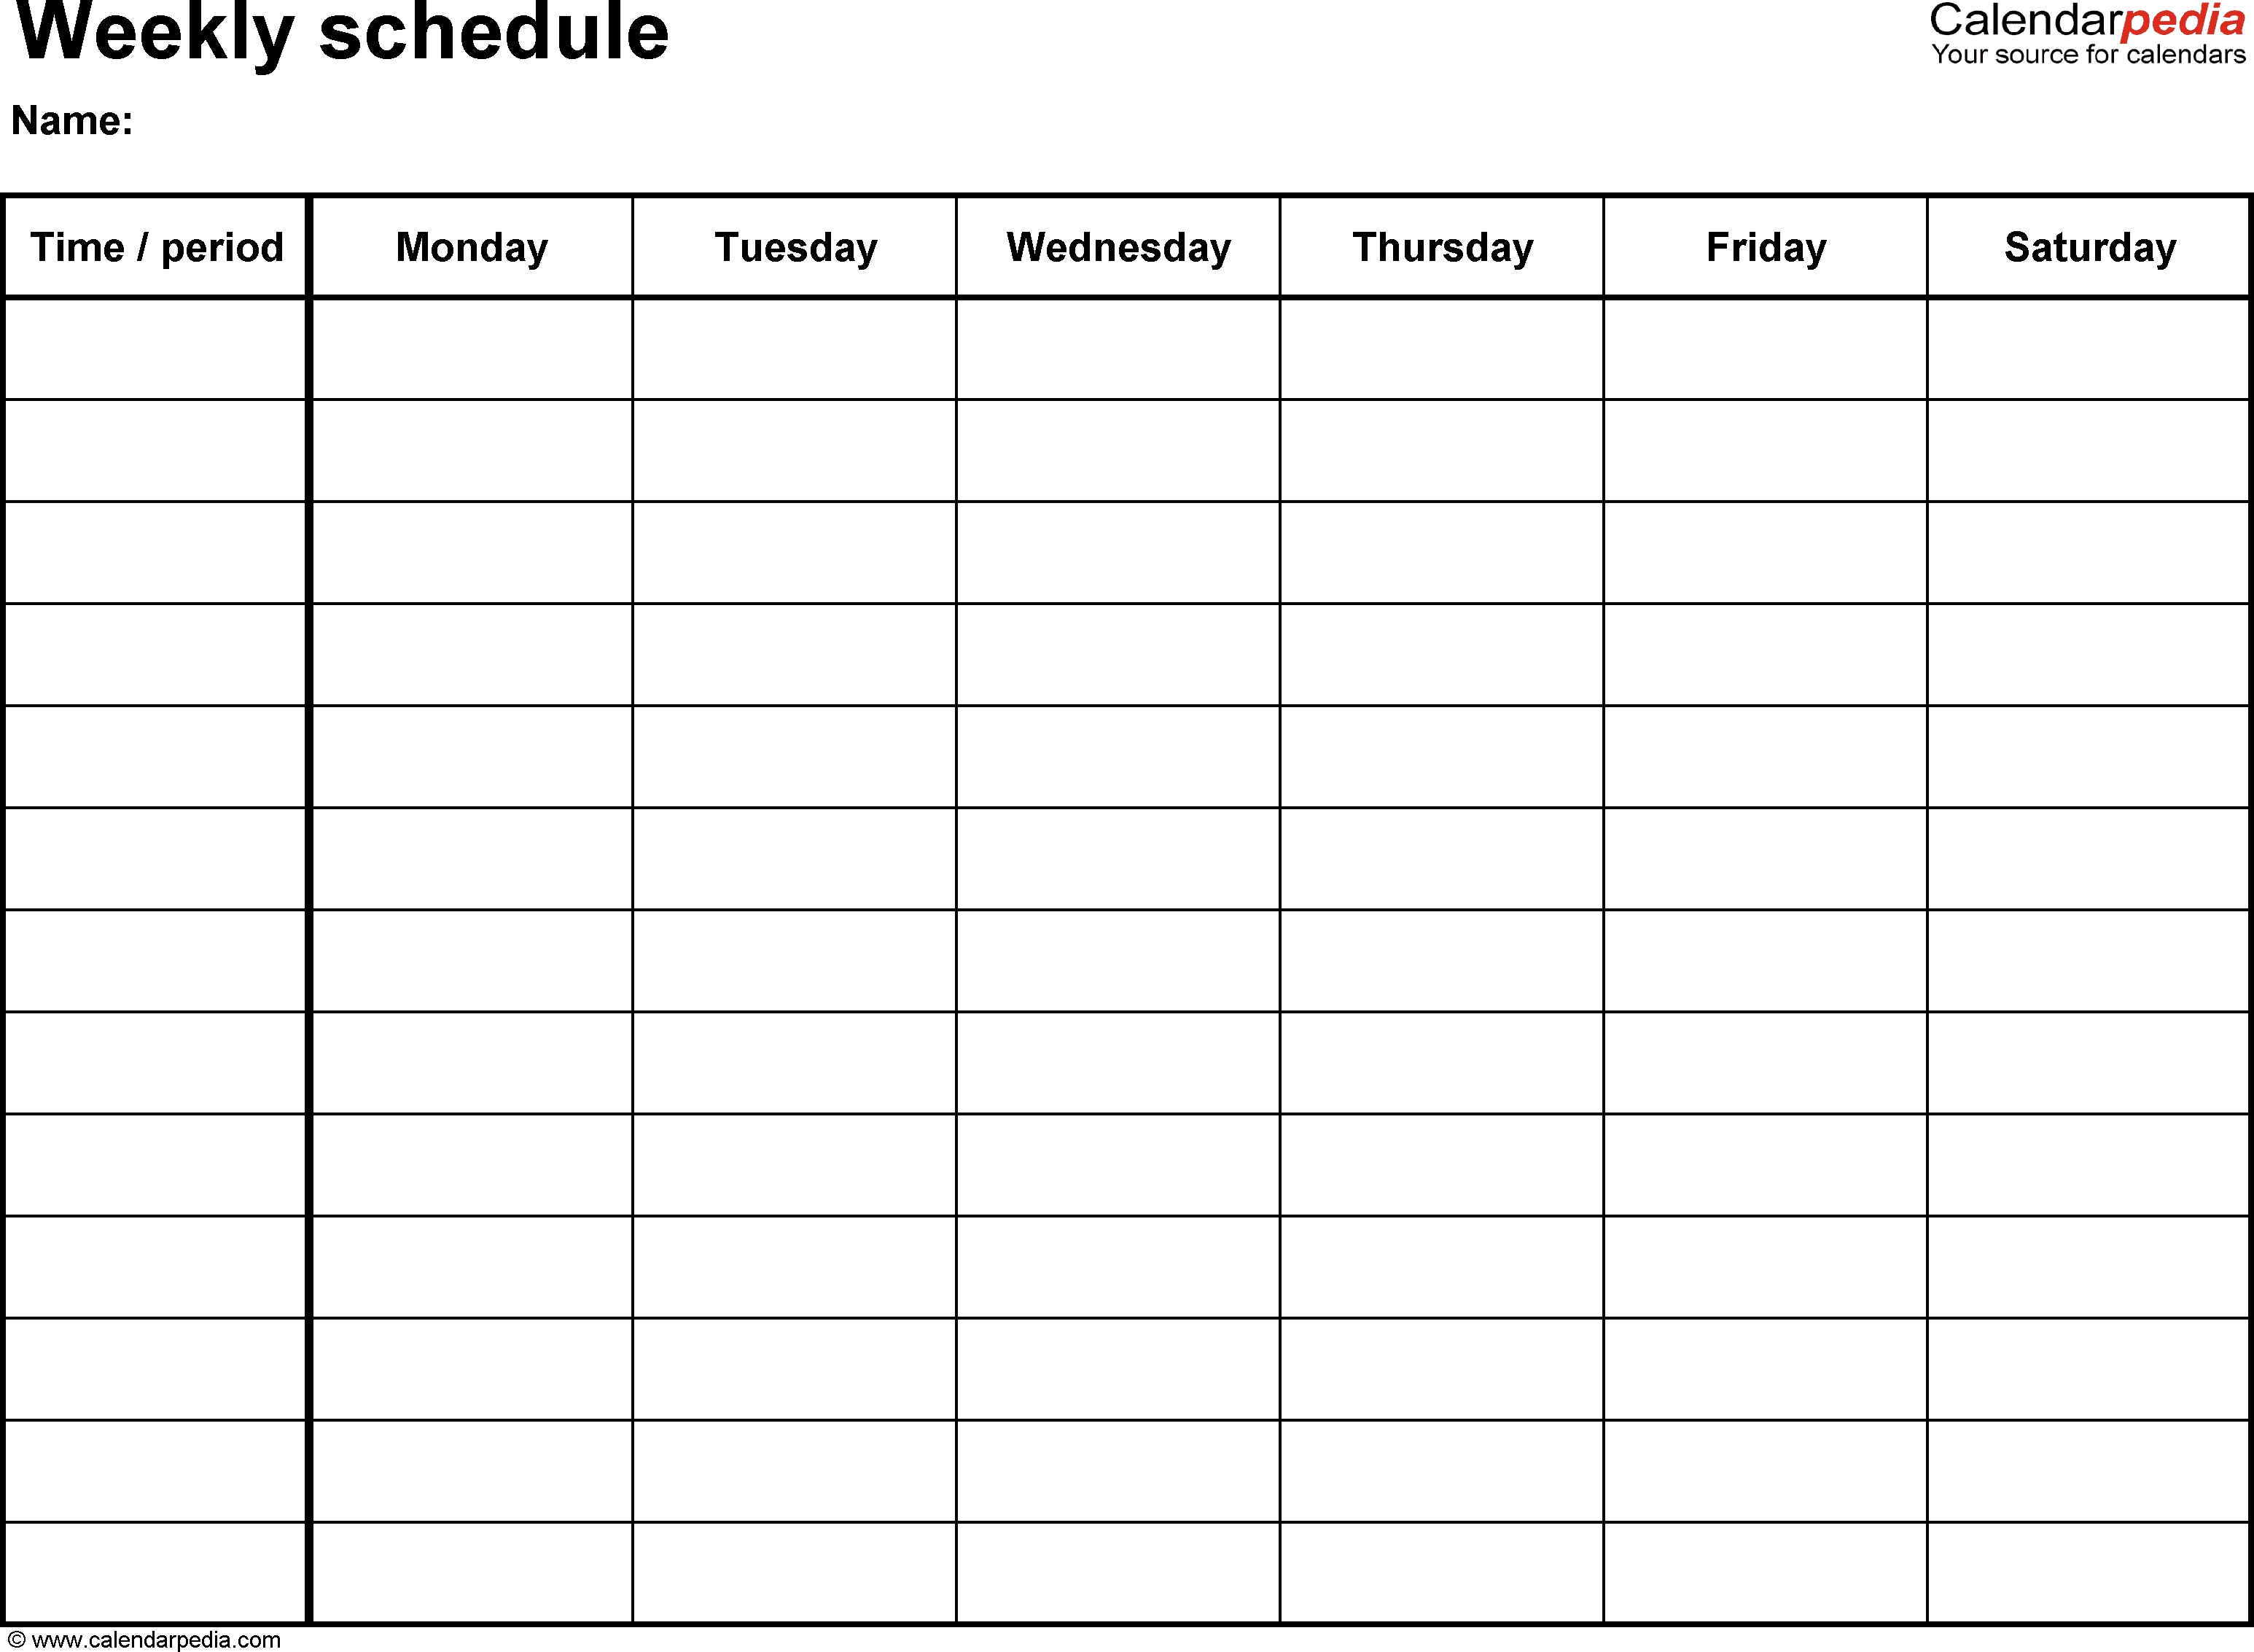 Free Weekly Schedule Templates For Word - 18 Templates  6 Week Blank Calendar Template